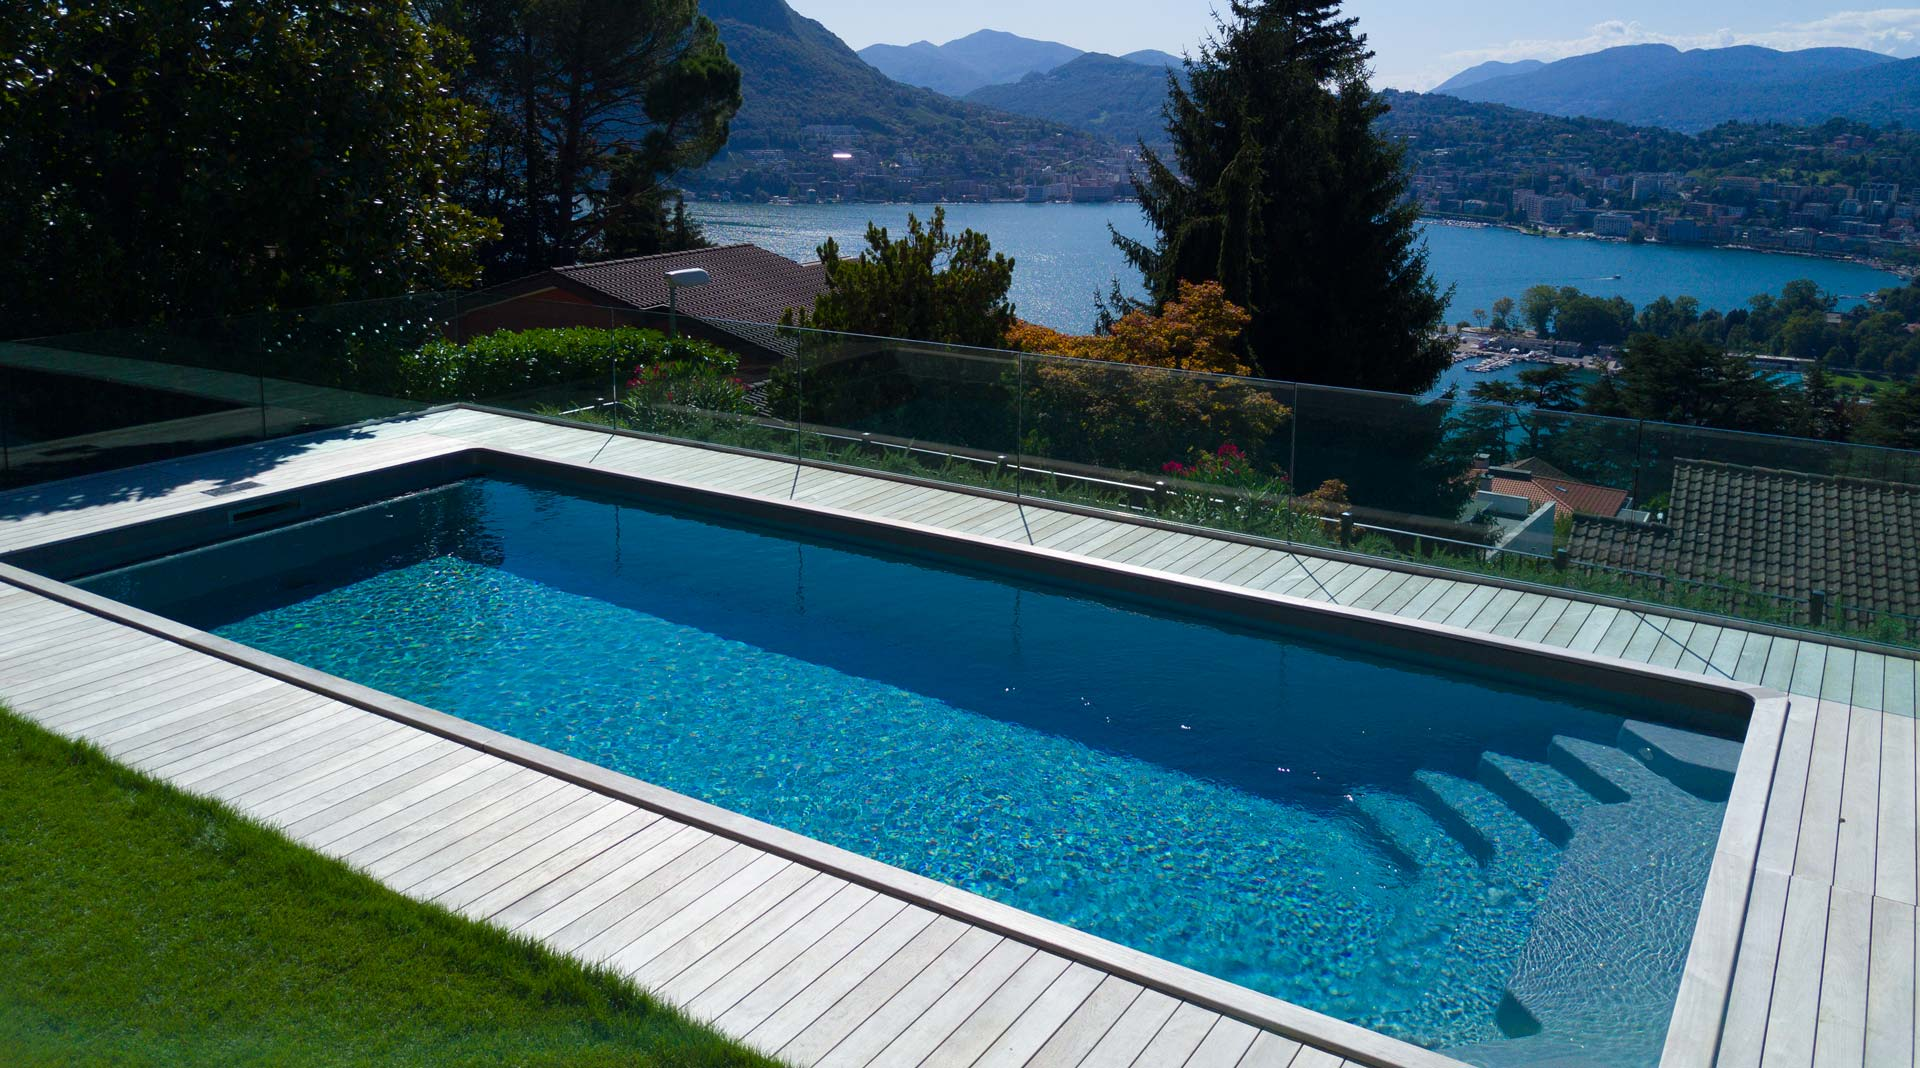 piscina-interrata-lago-svizzera